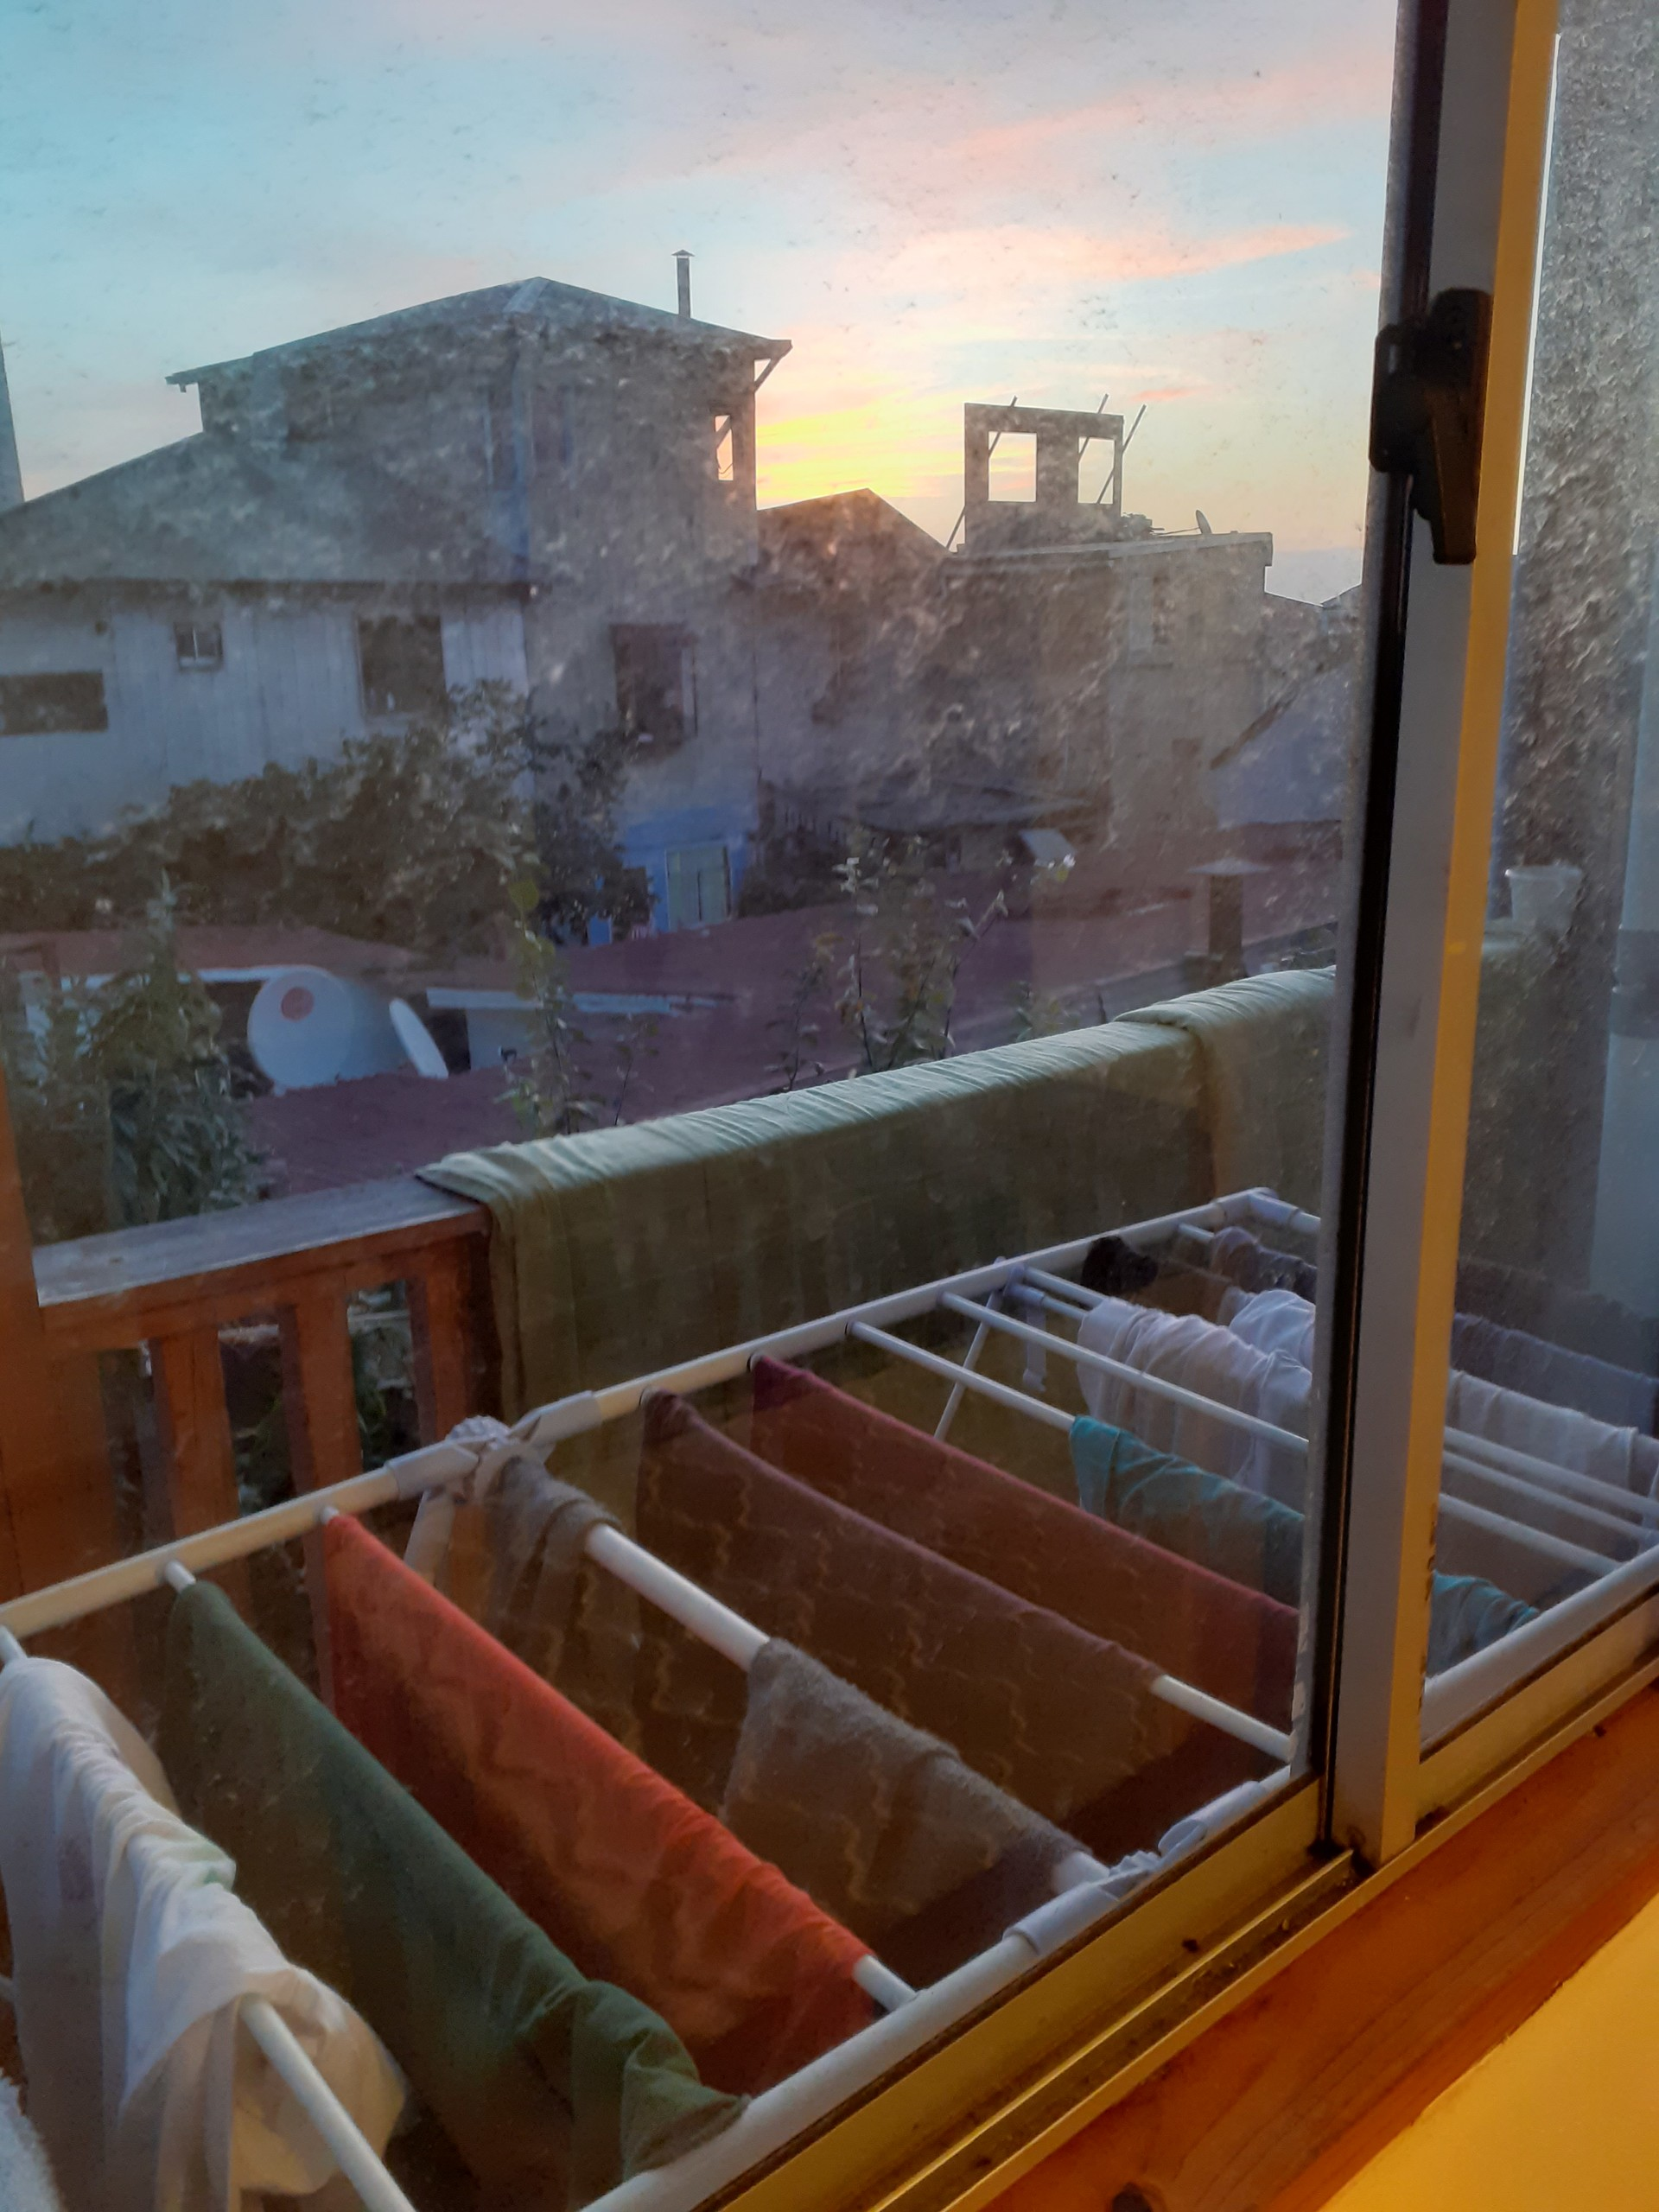 Room For Rent In 6 Bedroom House In Valparaiso Males Only And With Internet